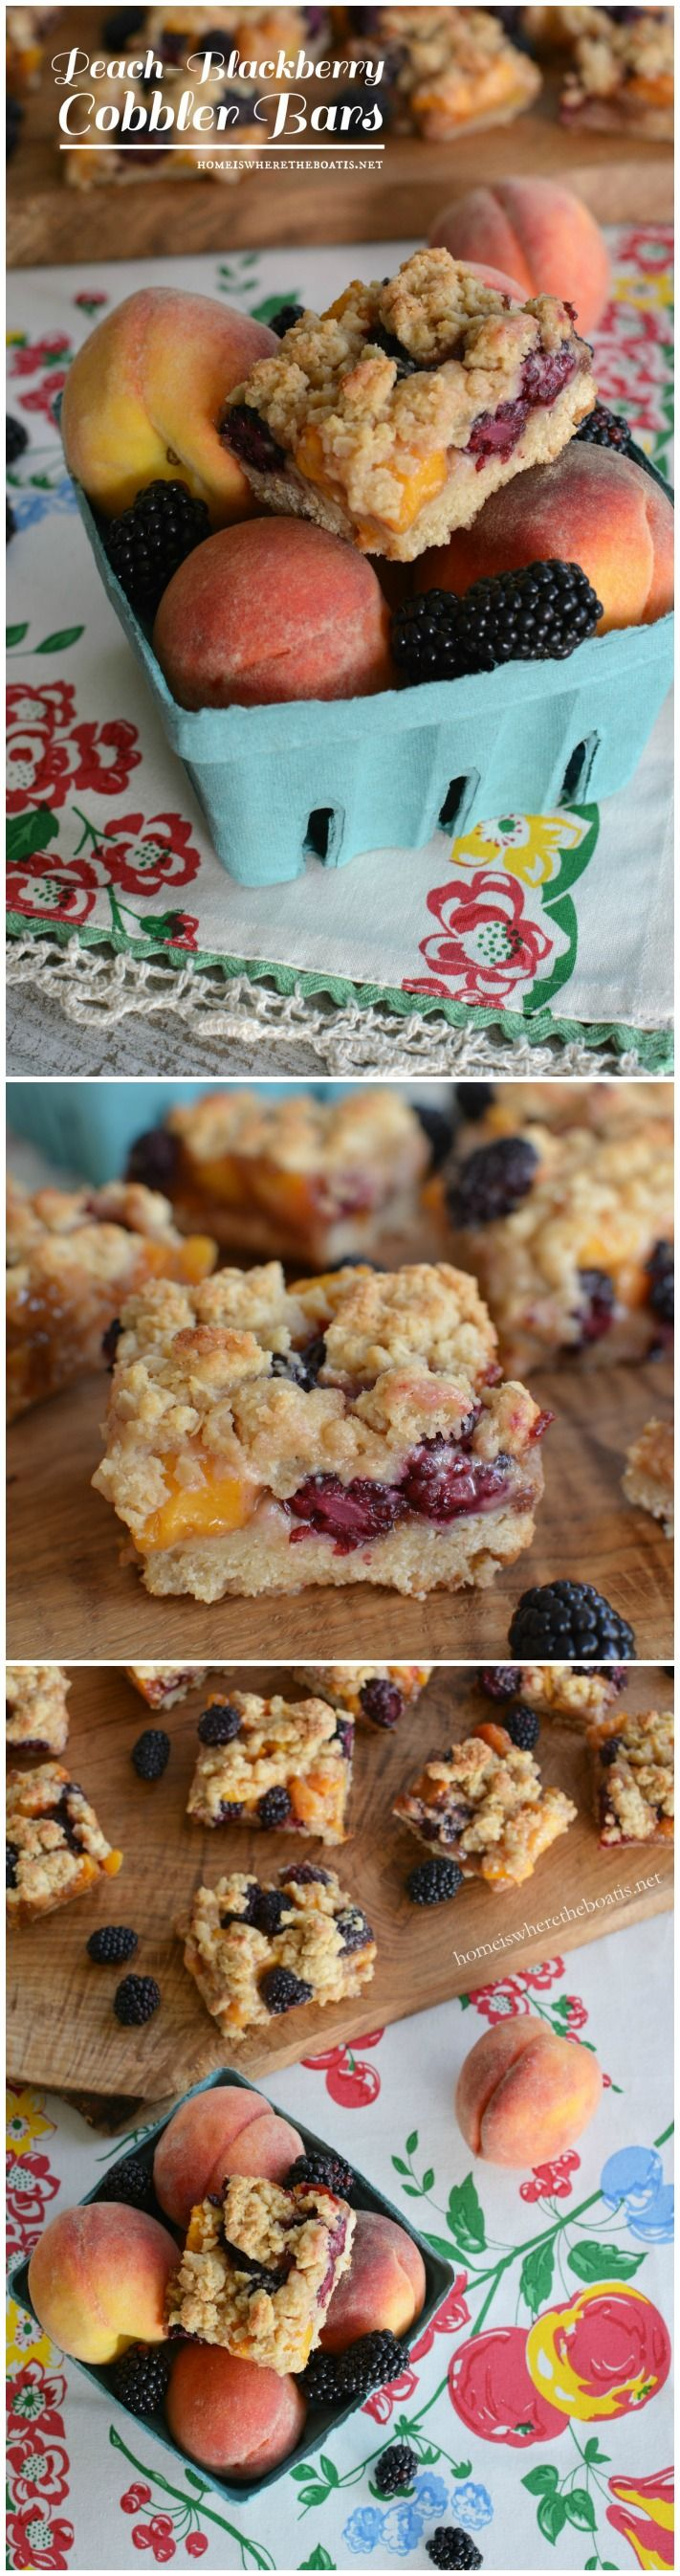 Peach Blackberry Cobbler Bars, a taste of summer in an easy dessert! | homeiswheretheboa... #summer #dessert